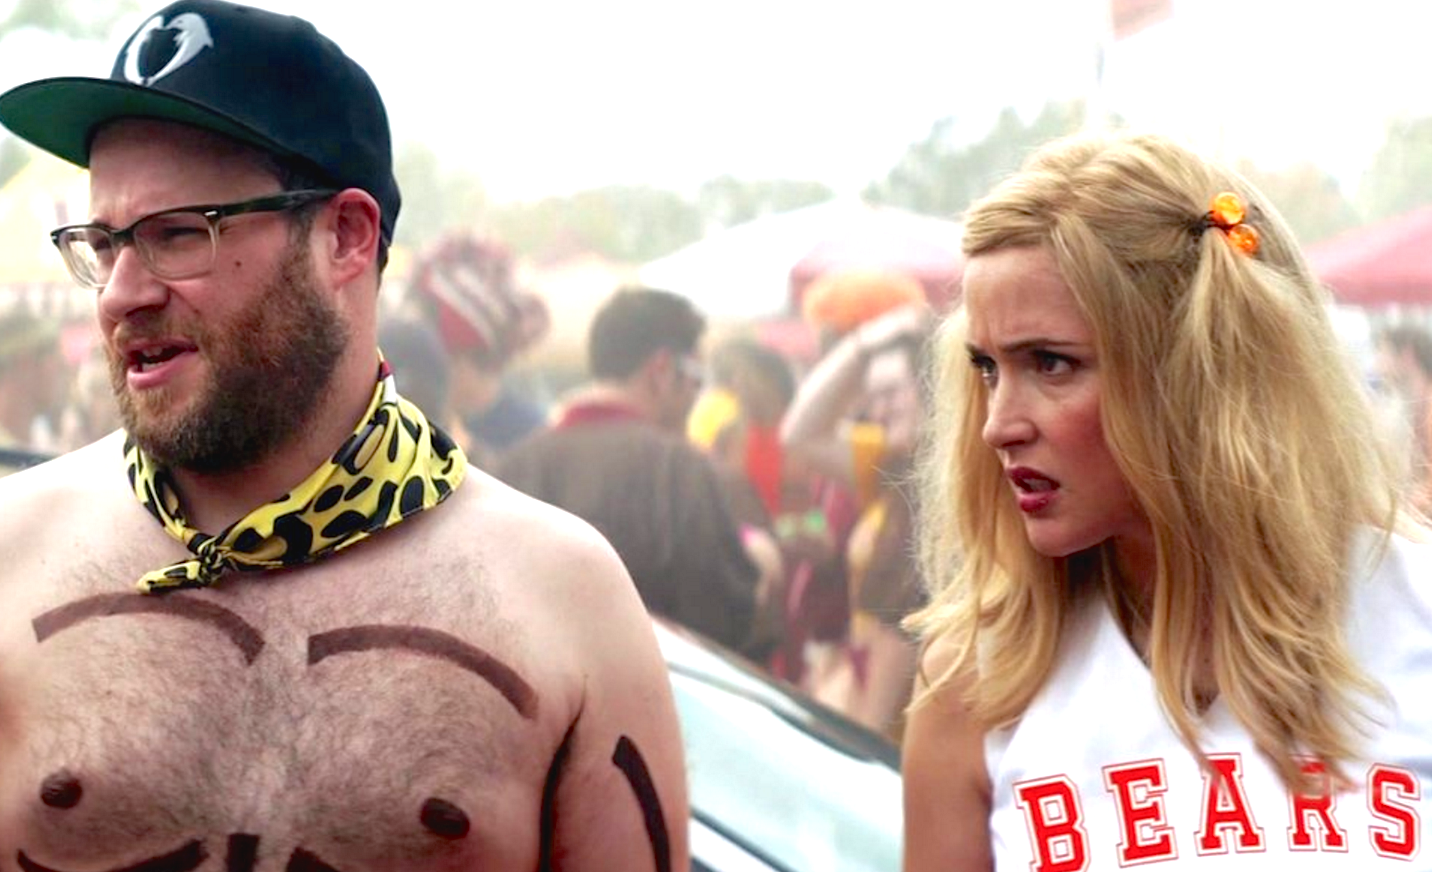 Neighbors 2 - Sorority Rising (2016), Seth Rogen, Rose Byrne